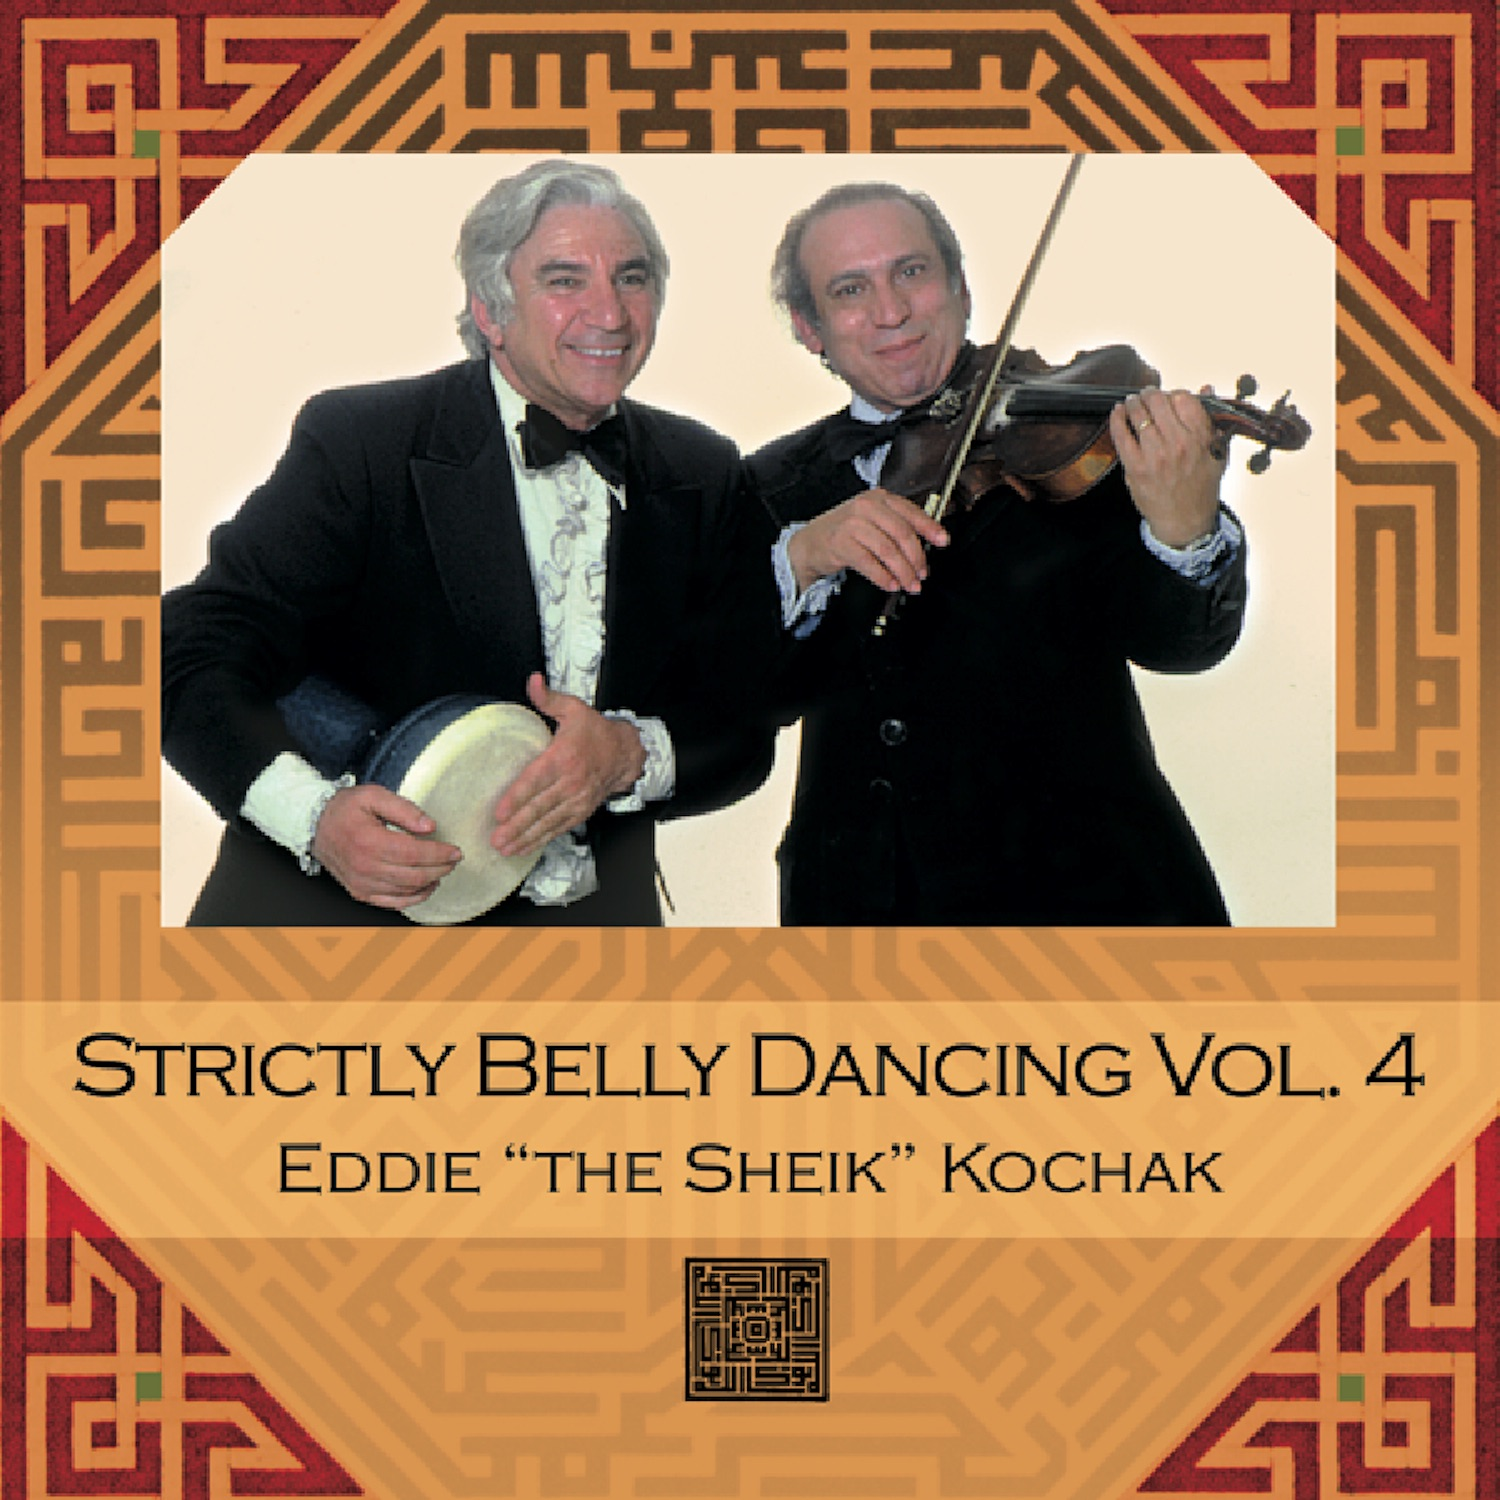 Strictly Belly Dancing Vol. 4